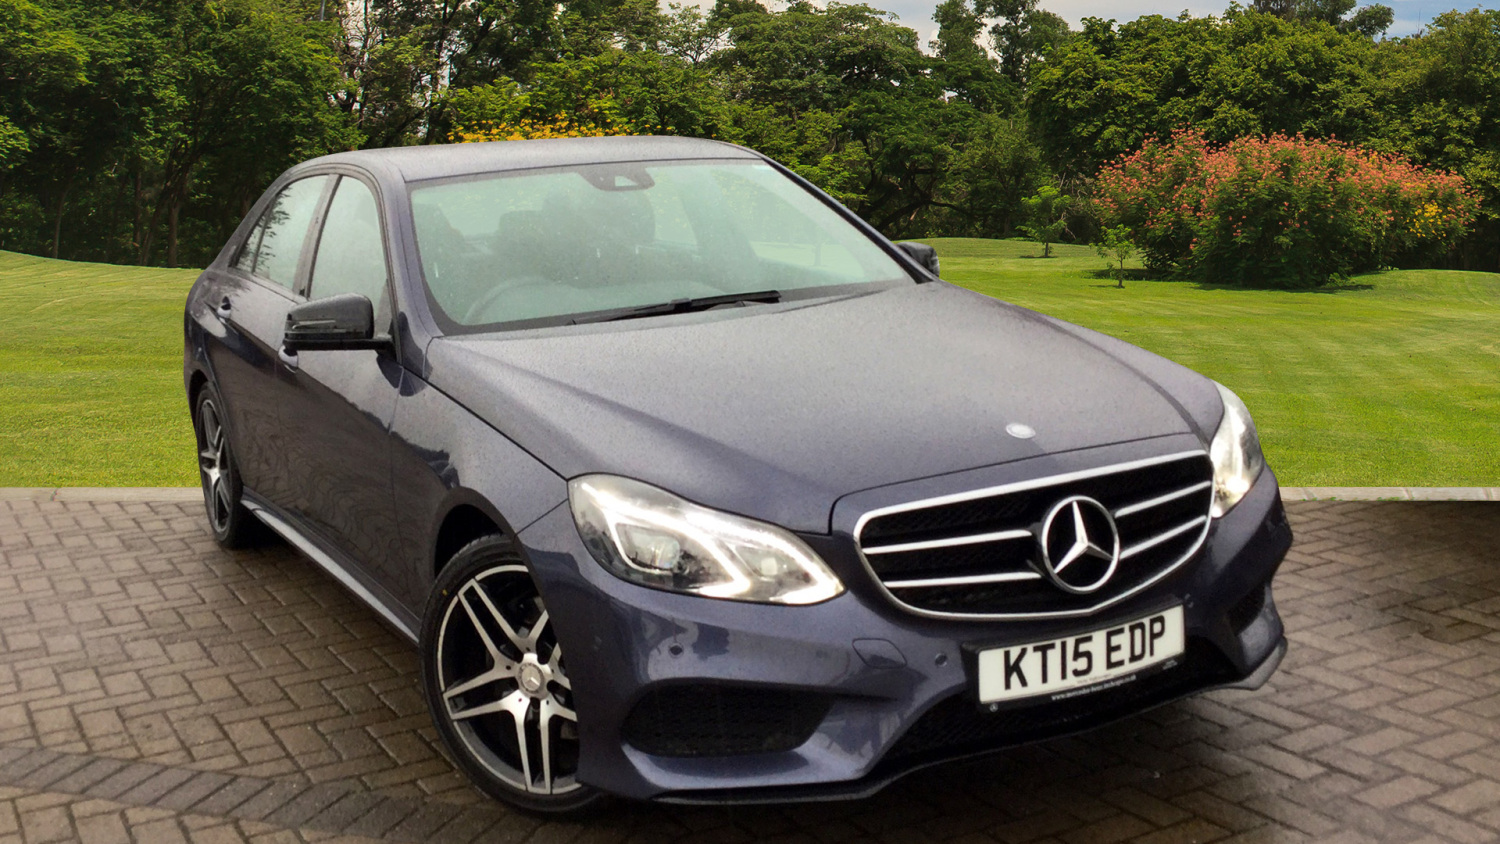 used mercedes benz e class e250 cdi amg night edition 4dr 7g tronic diesel saloon for sale. Black Bedroom Furniture Sets. Home Design Ideas